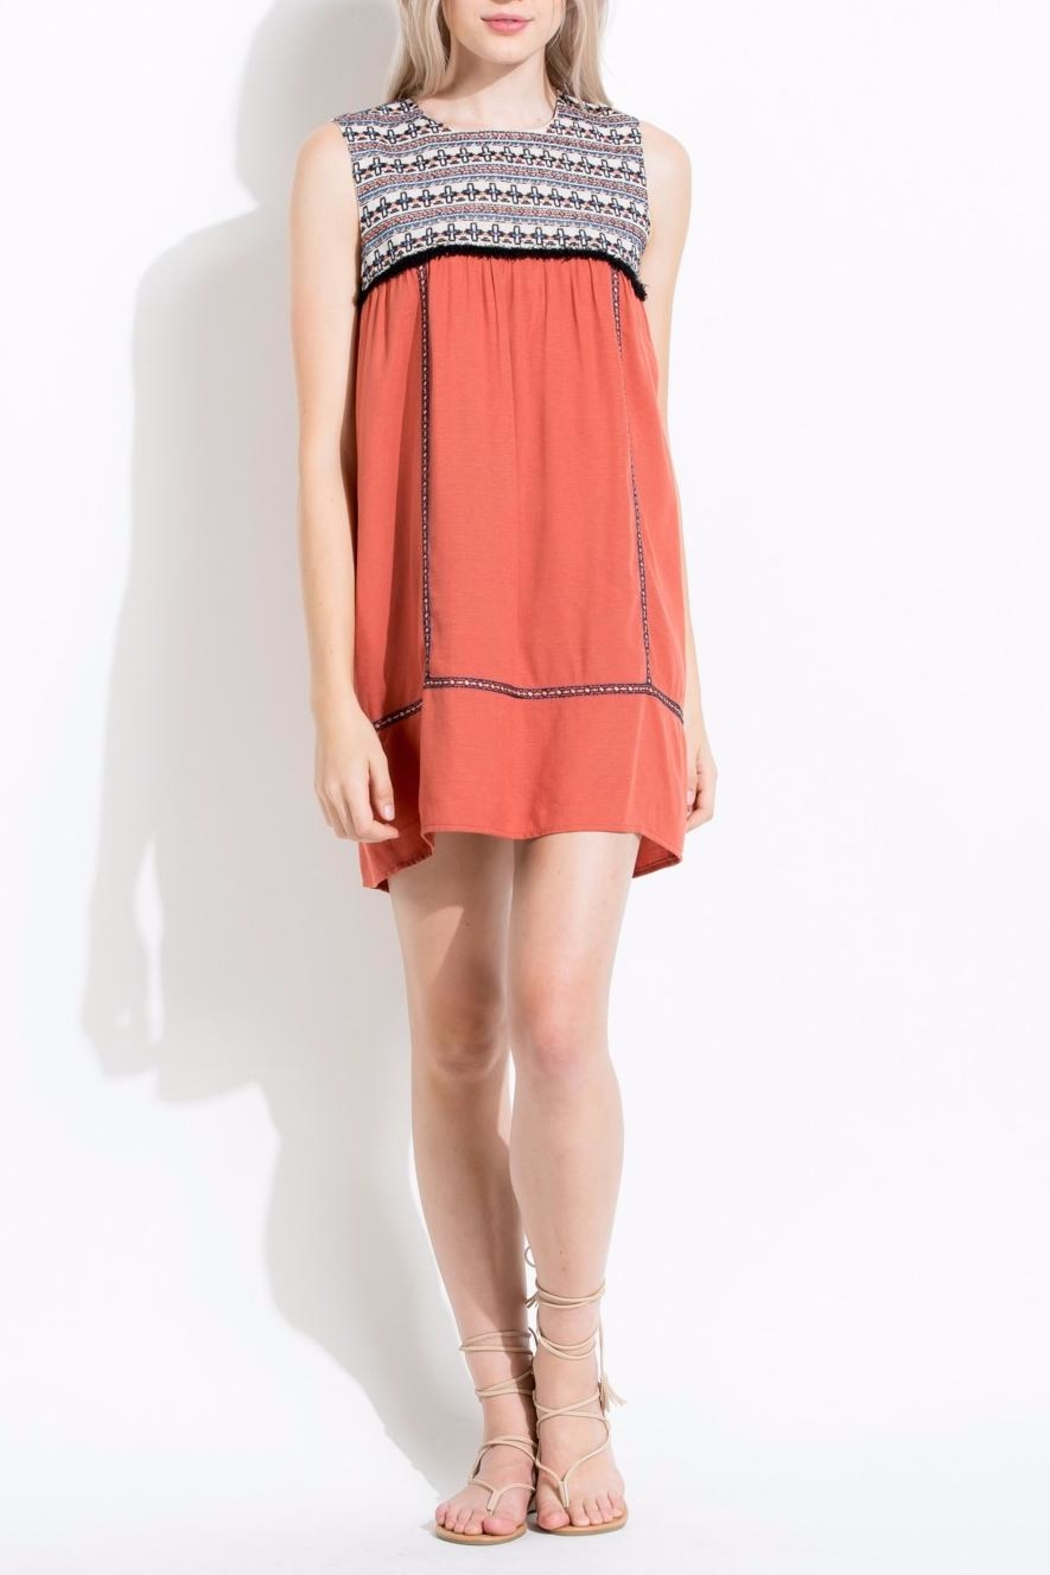 Thml Coral Embroidered Dress - Main Image